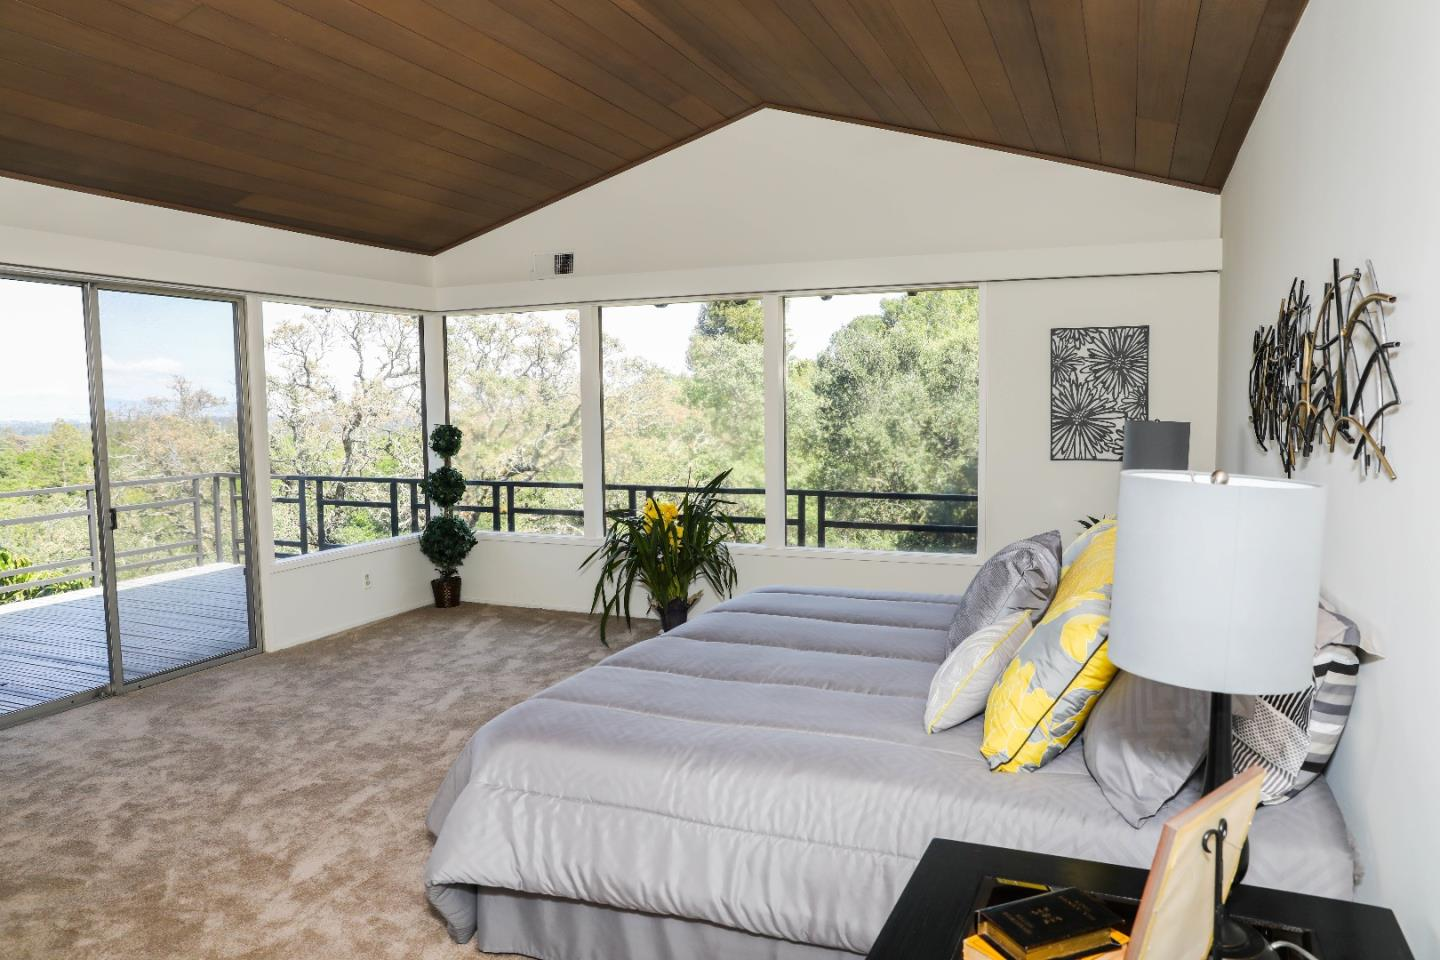 Additional photo for property listing at 210 Hardwick Rd  WOODSIDE, CALIFORNIA 94062